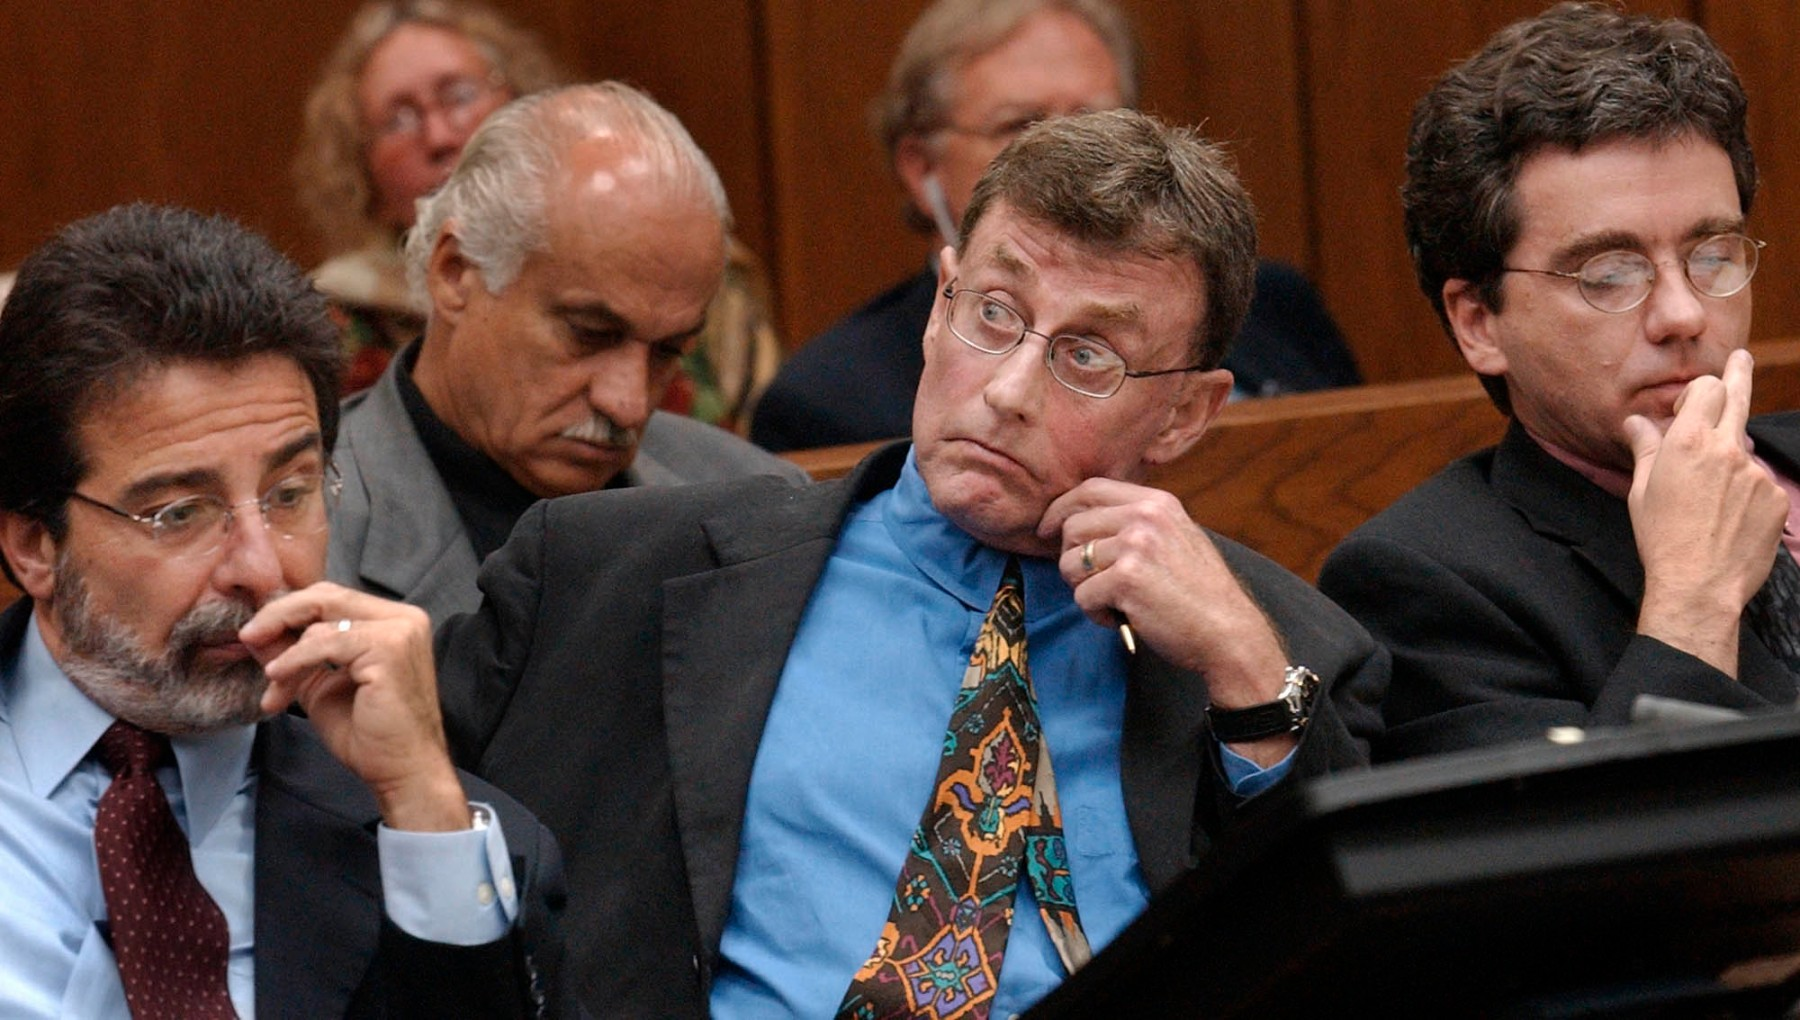 Michael Peterson watches as prosecutor David Saacks, not pictured, argues why gay pornography and e-mail soliciting sex with another man taken from  Peterson's home computer should be presented to the jury during Peterson's murder trial, Thursday Aug. 7, 2003, in Durham, N.C. (AP Photo/Chuck Liddy, Pool)